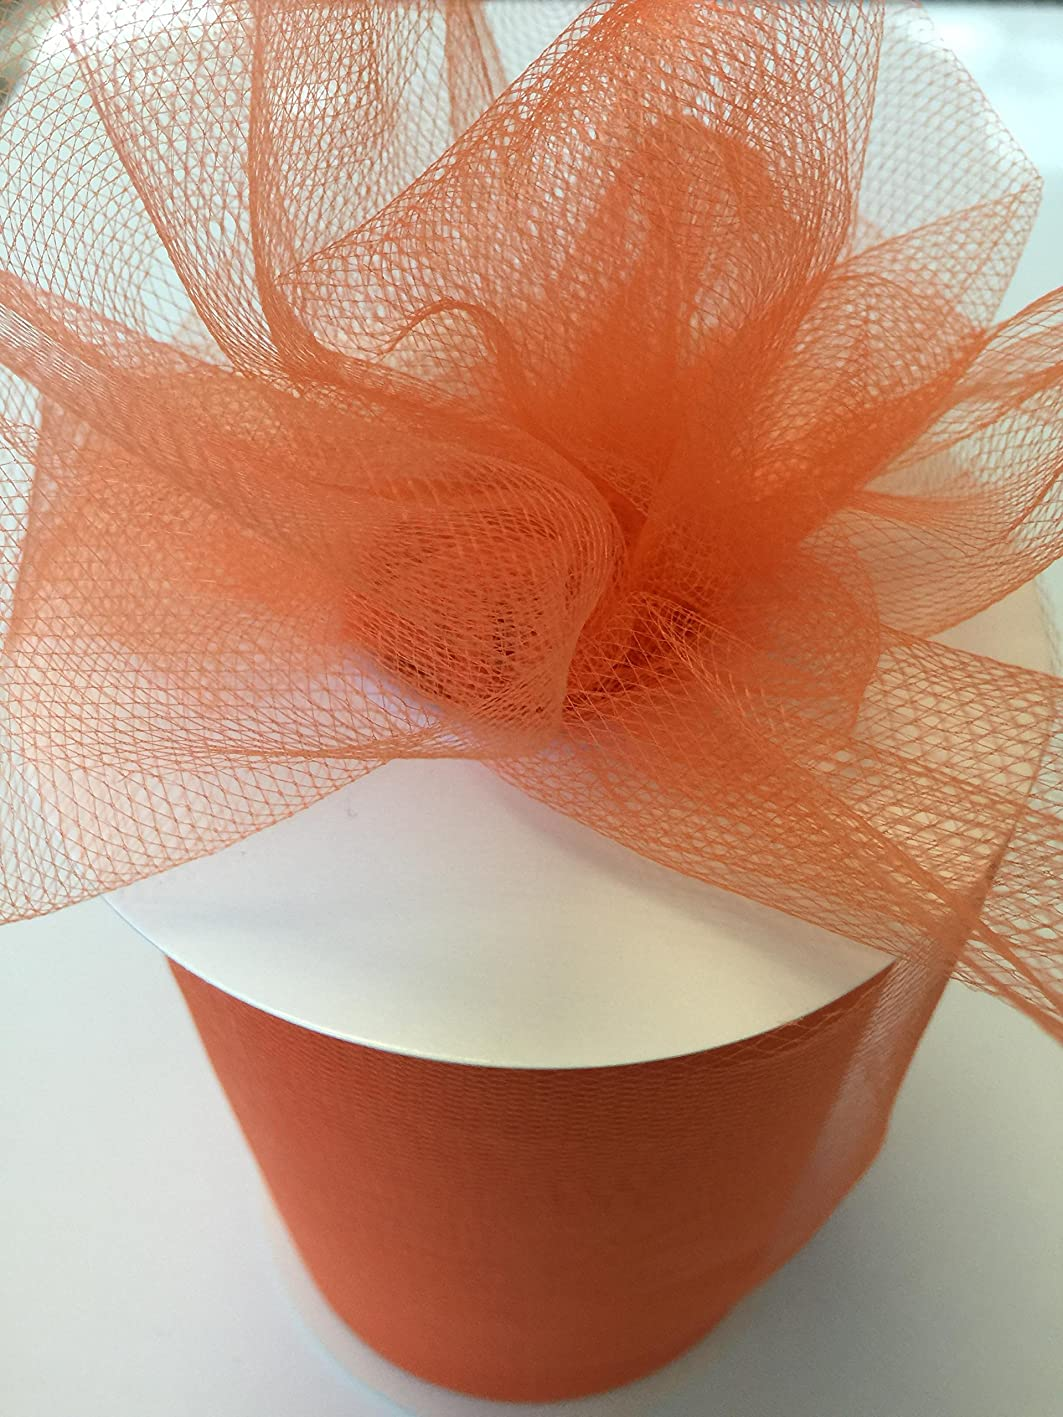 Tulle Fabric Spool/Roll 6 inch x 100 yards (300 feet), 34 Colors Available, On Sale Now! (orange) liofafkvsnq237